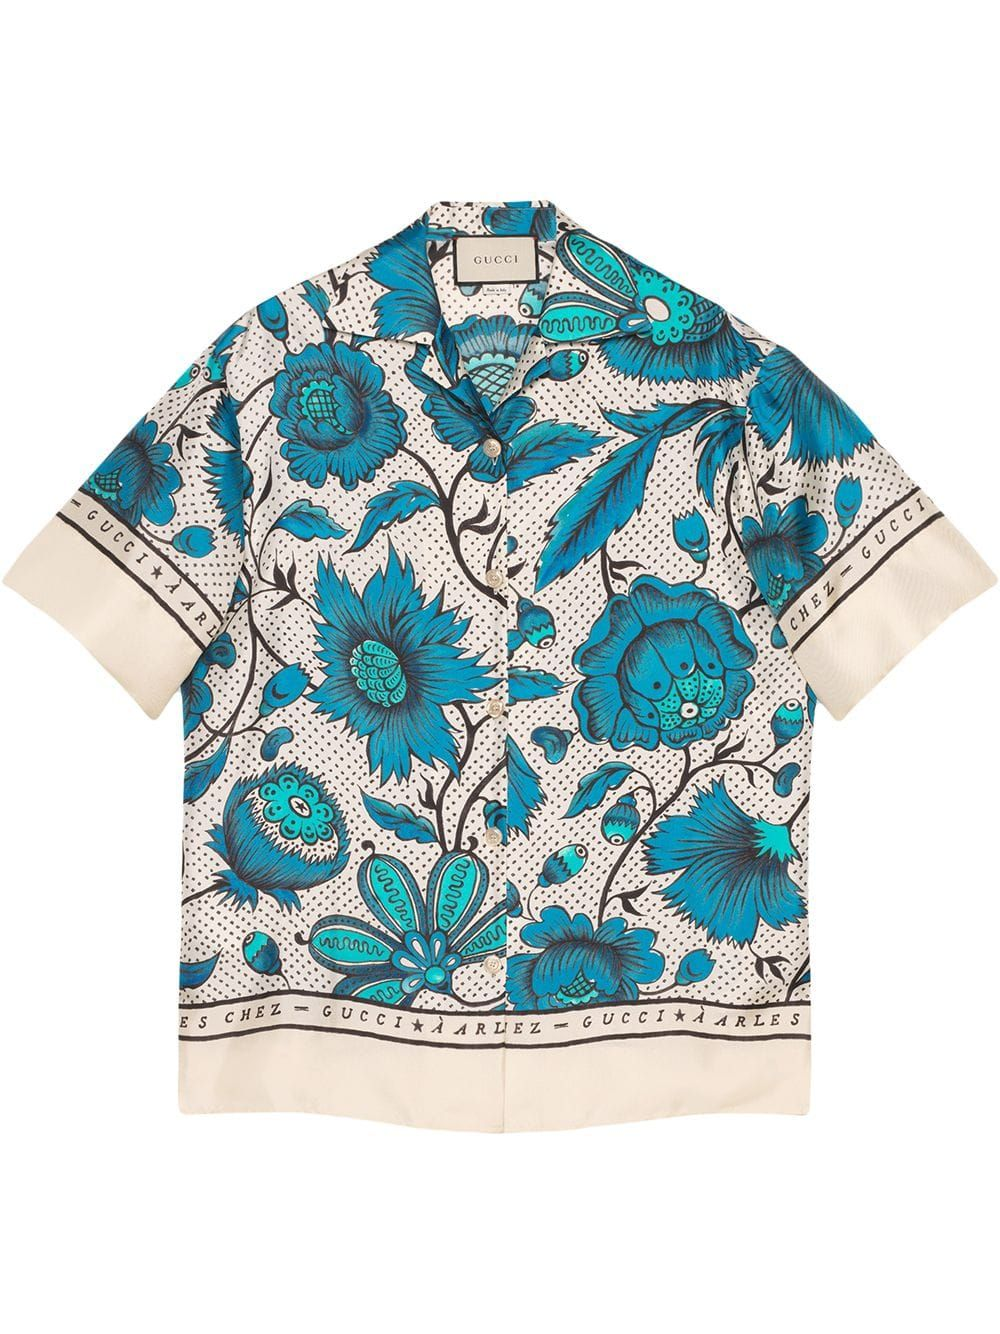 Bowling Shirt With Watercolor Flowers Bowling Shirts Pattern